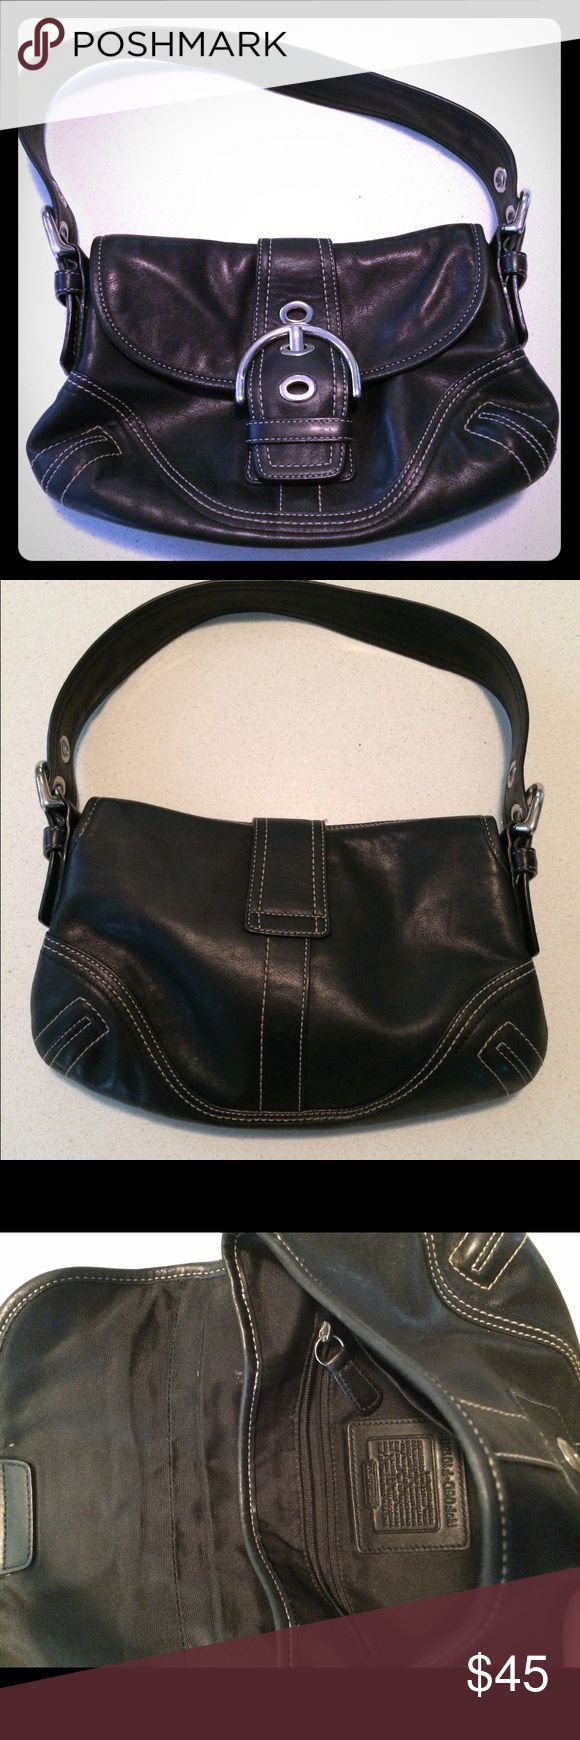 Black coach purse Classic black coach purse. In good used condition. Coach Bags Shoulder Bags